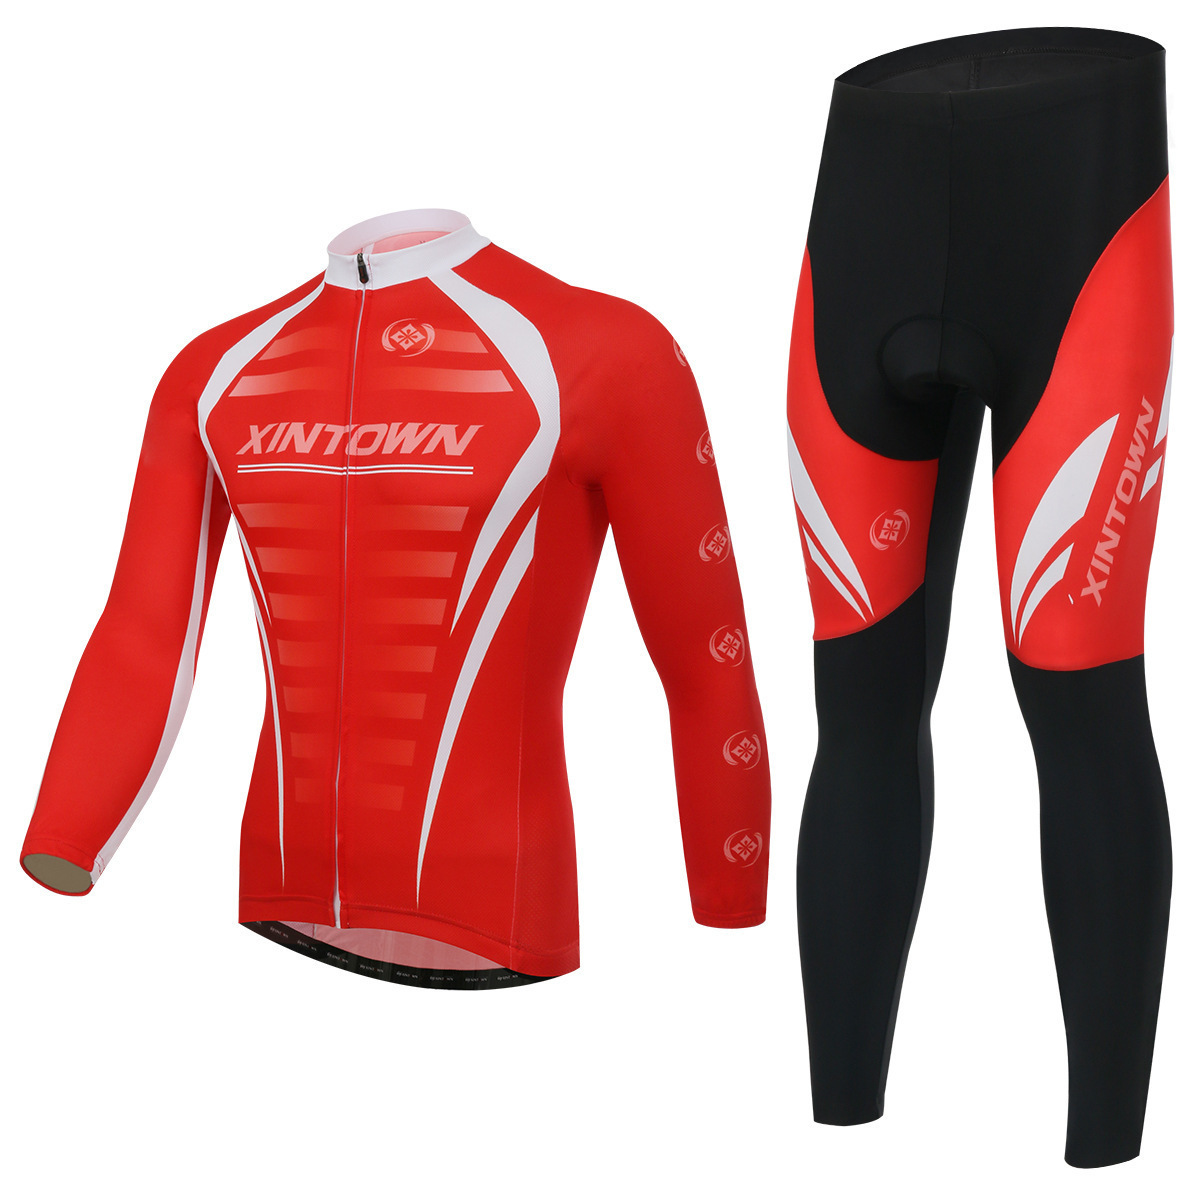 XINTOWN Spring Autumn Long Sleeve Men UV Protect Cycling Jerseys Sets MTB Bike Quick Dry Breathable Riding Jersey Clothing Sets